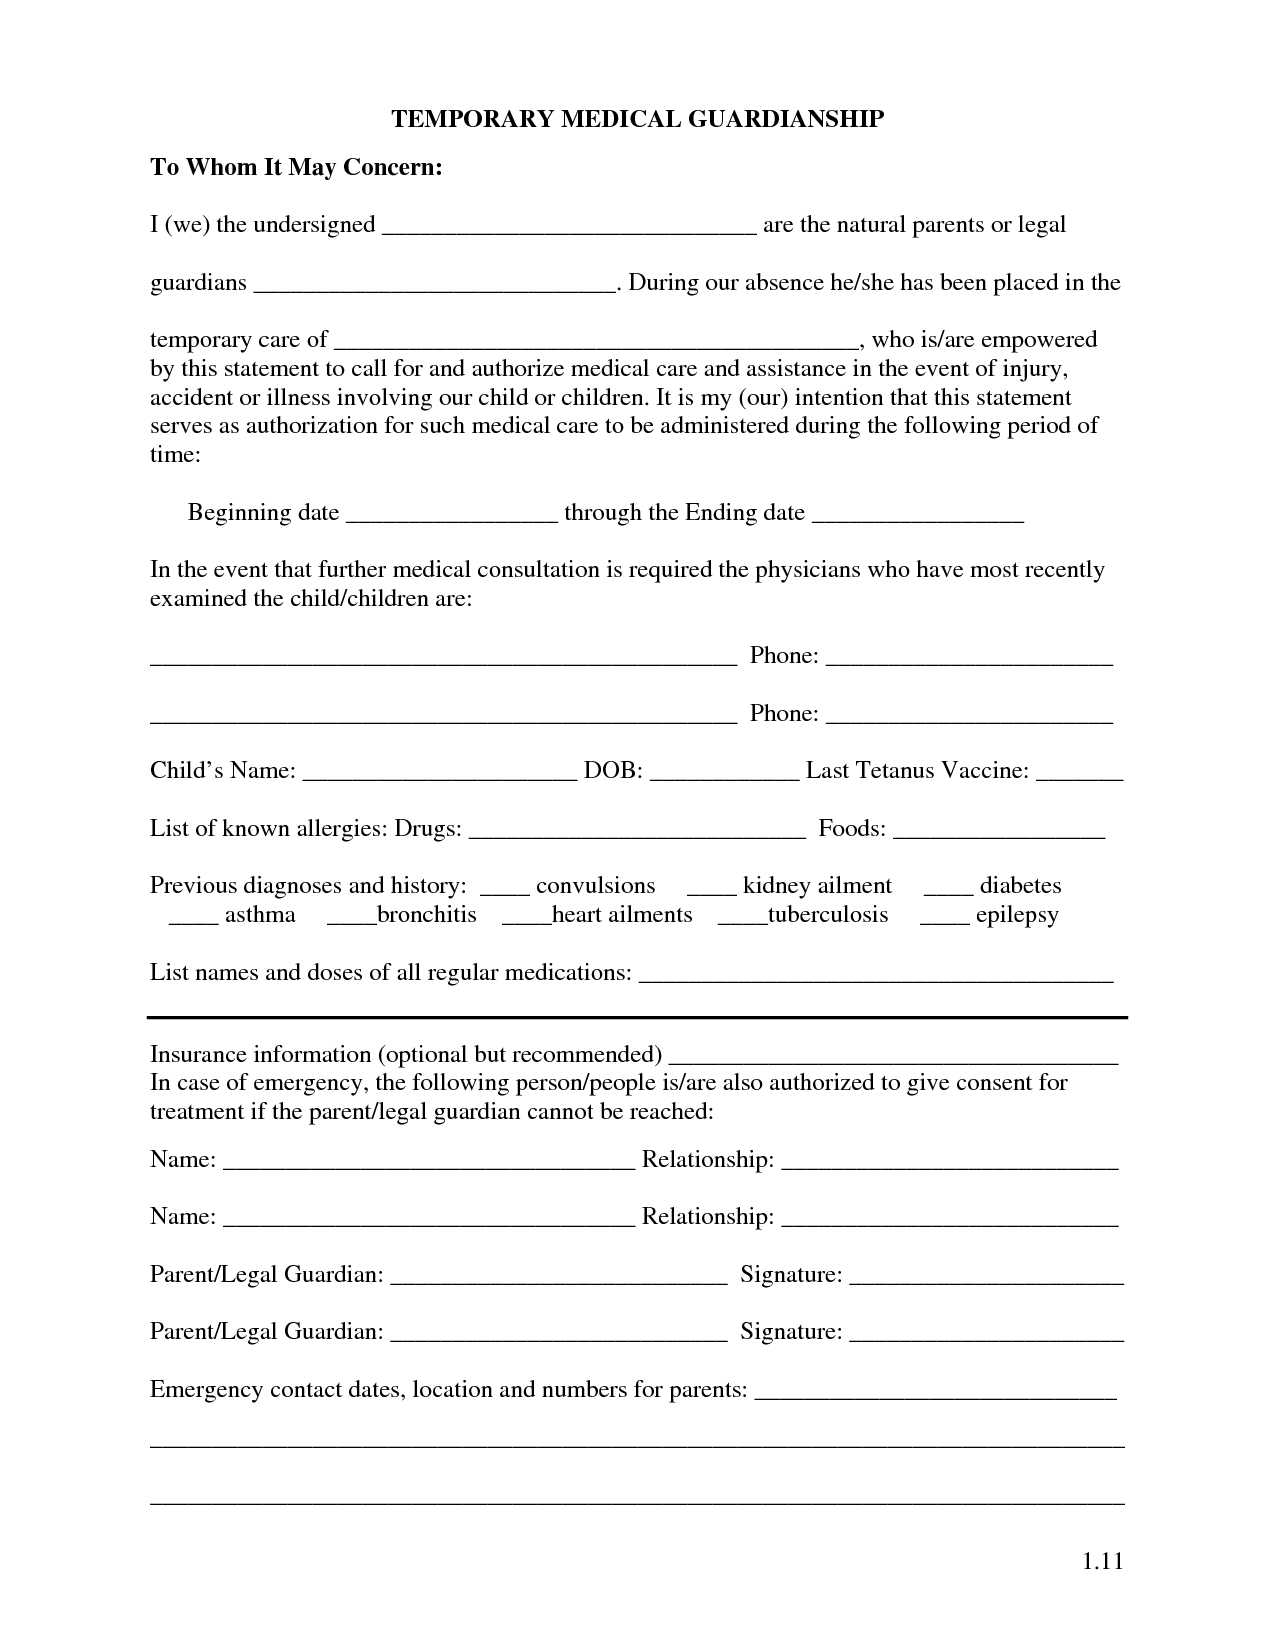 Free Printable Temporary Guardianship Forms | Forms | Child Custody - Free Printable Legal Documents Forms